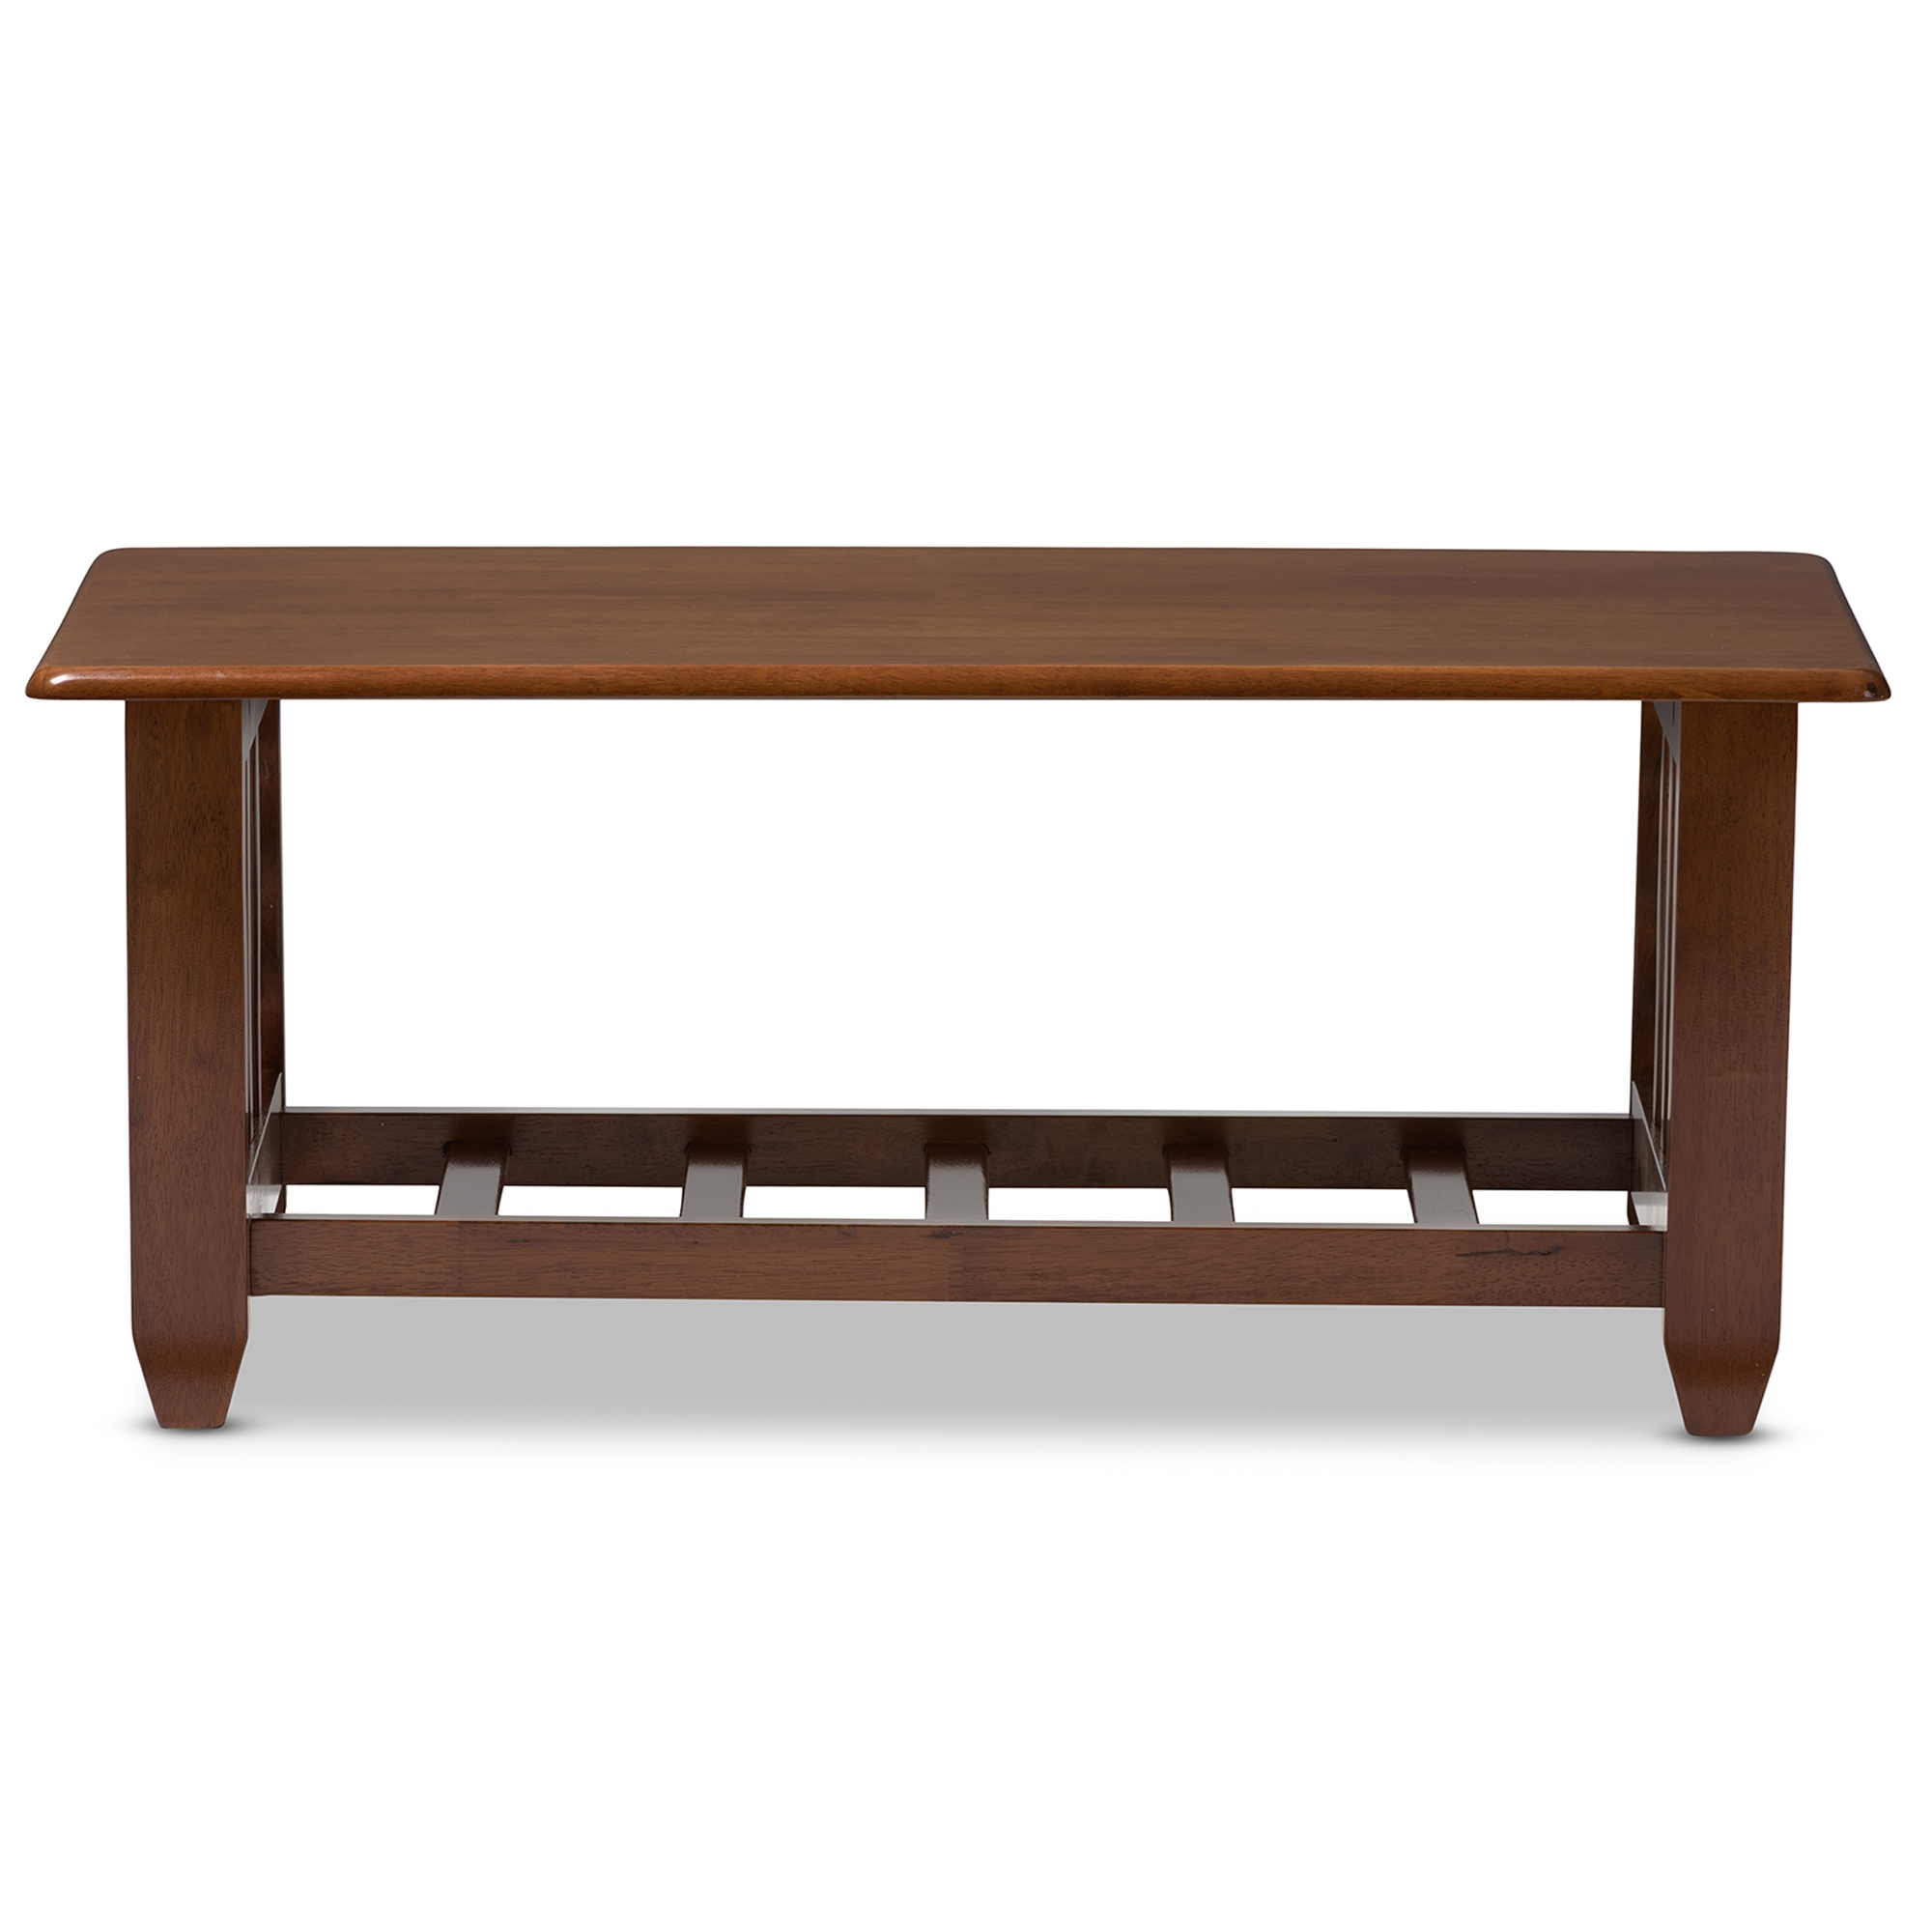 Merveilleux Baxton Studio Larissa Modern Classic Mission Style Cherry Finished Brown  Wood Living Room Occasional Coffee Table